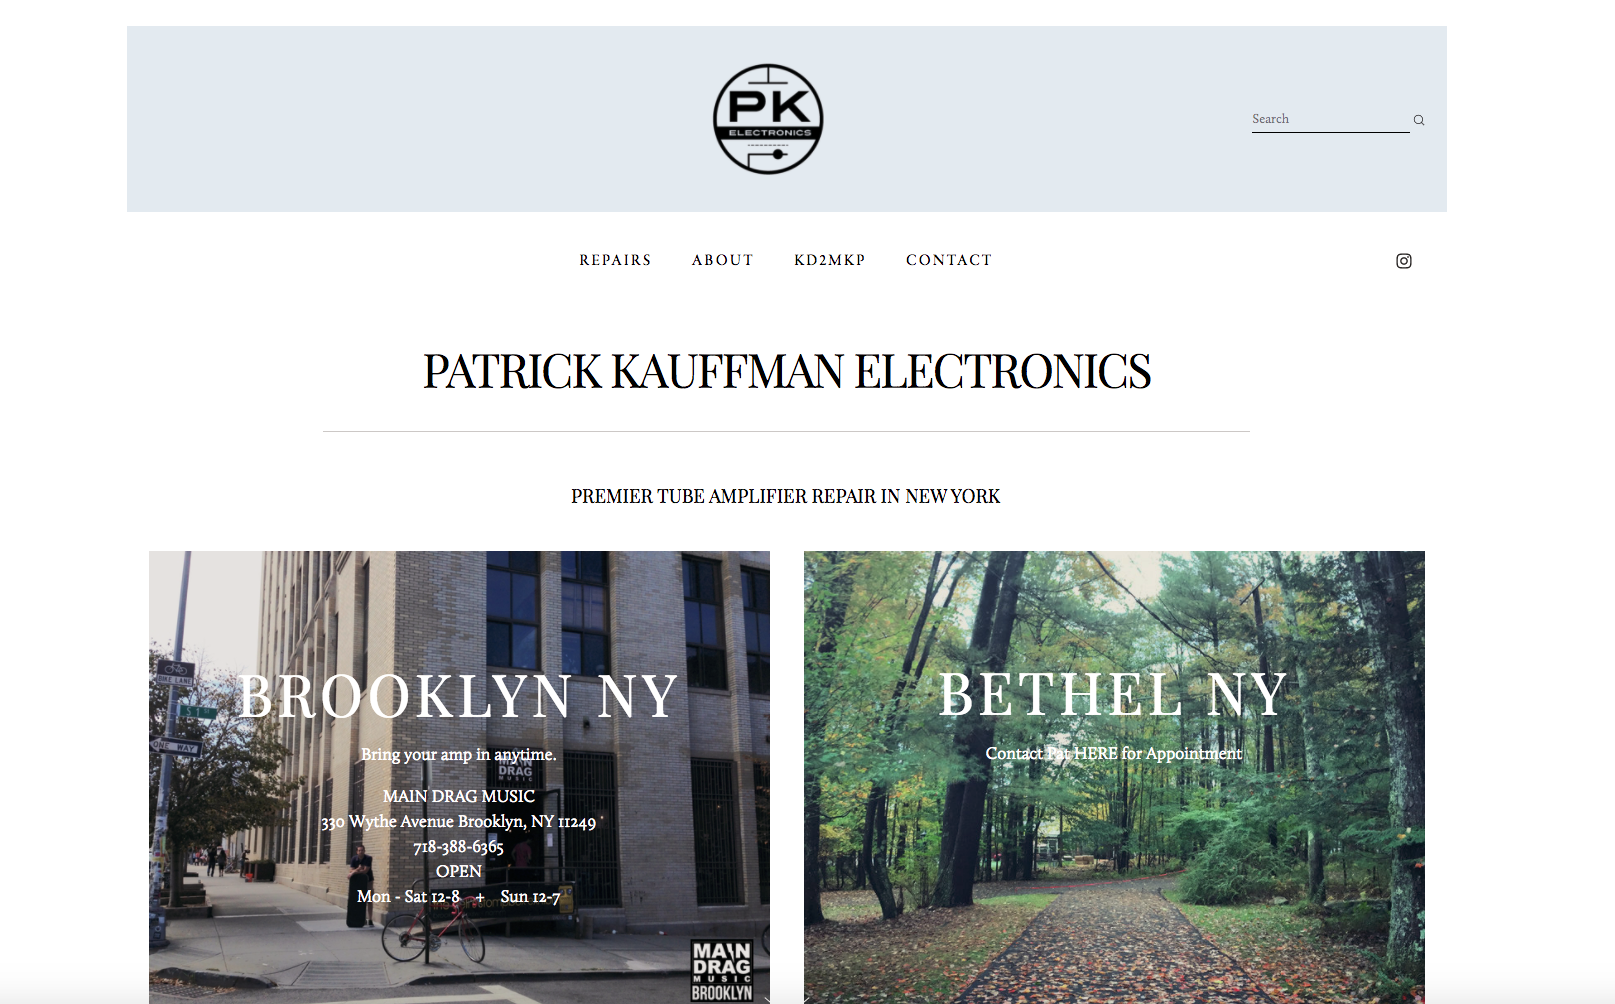 Patrick Kauffman Electronics | Brooklyn and Bethel, NY   Squarespace site for Patrick Kauffman, who is a tube amplifier technician at Brooklyn's Main Drag Music. He also operates out of Bethel, NY.